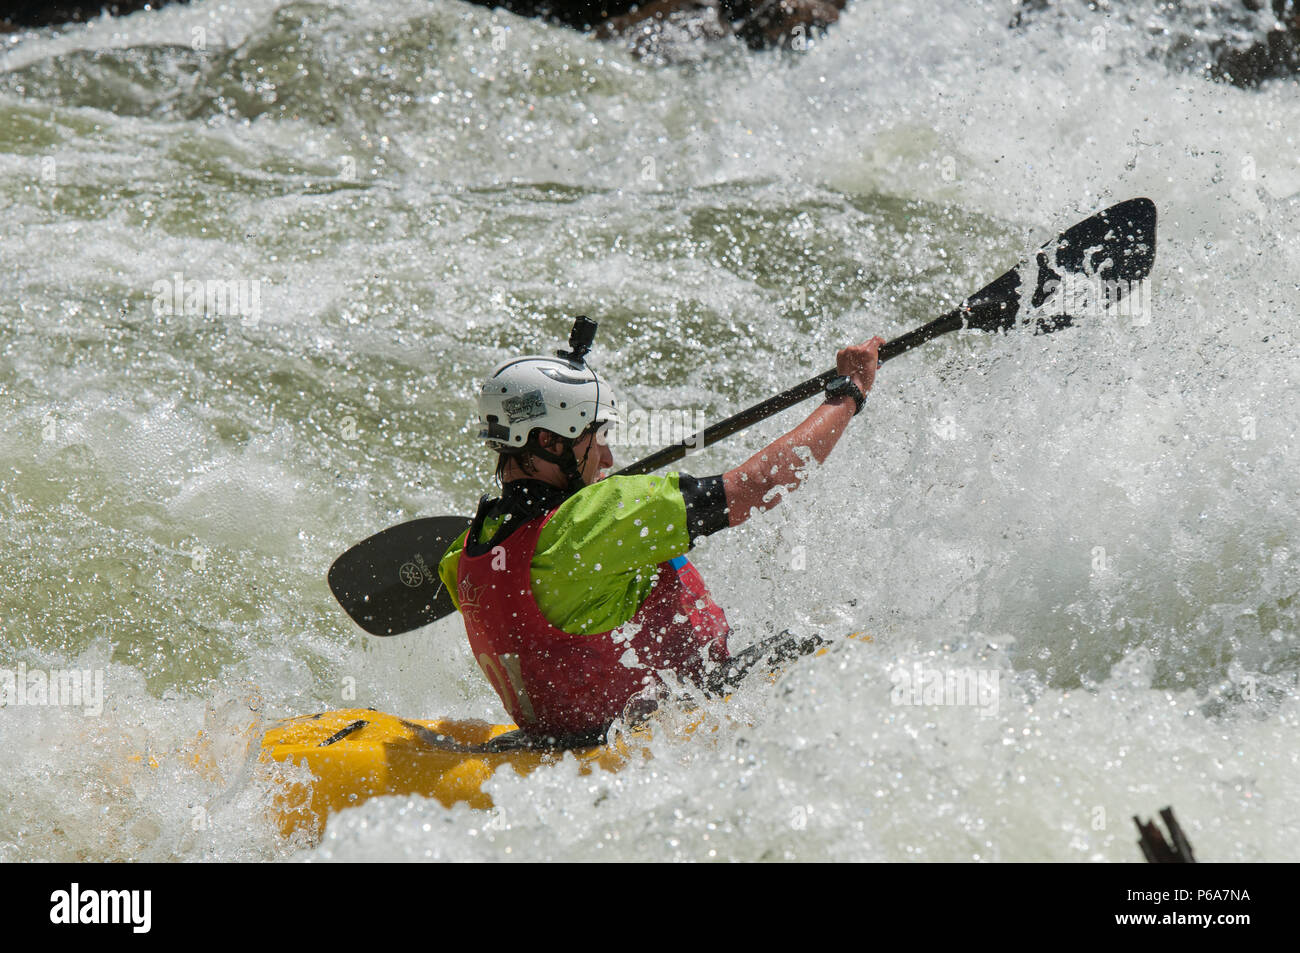 Kayaking on the North Fork Payette River in Jacobs Ladder class V rapid during the 2018 North Fork Championship - Stock Image